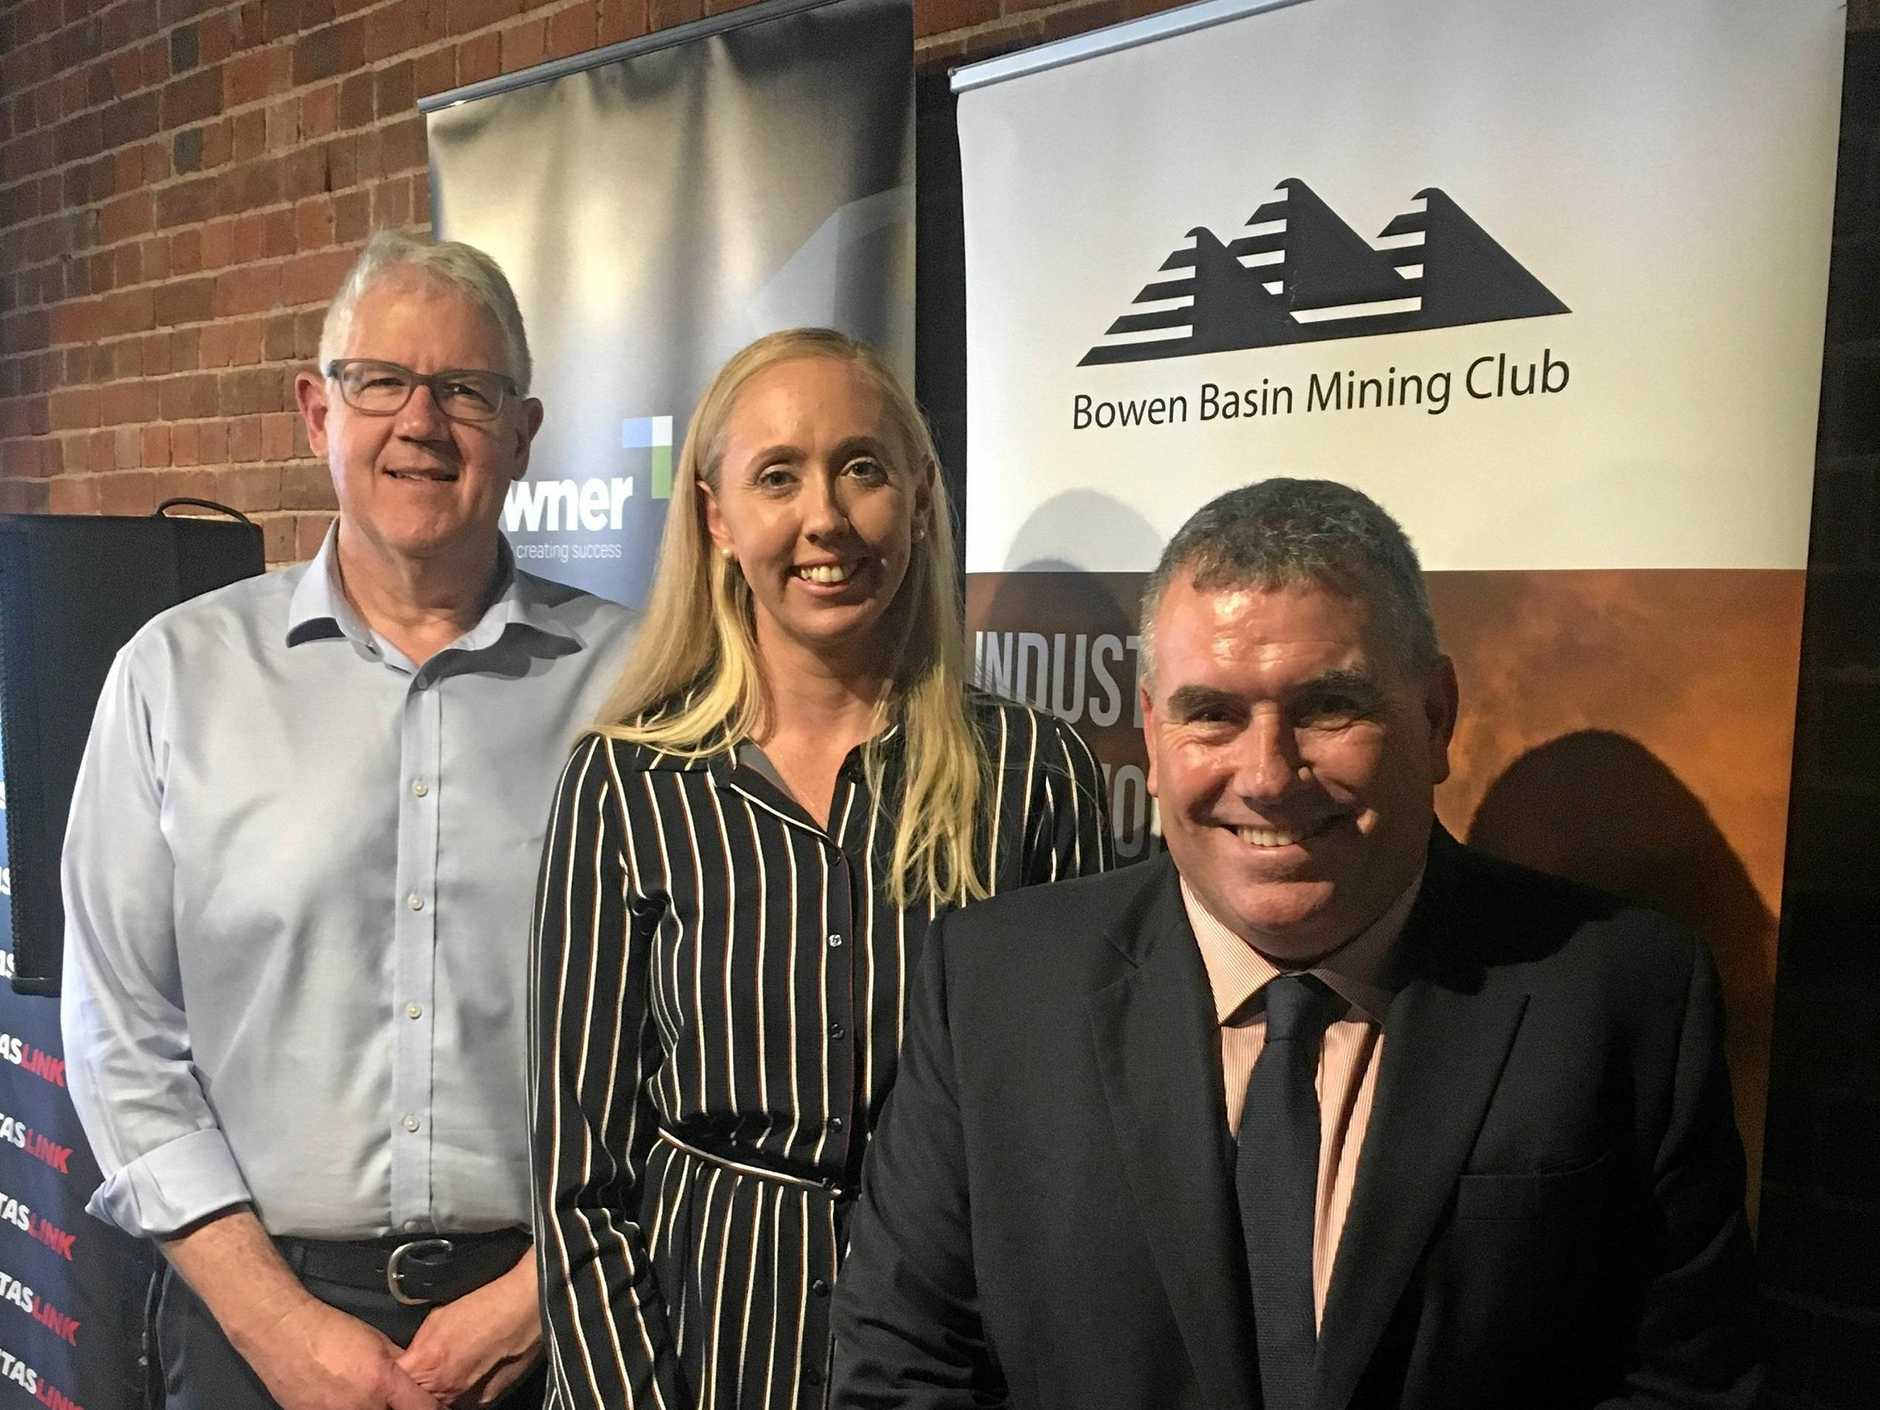 RESOURCES HEARTLAND: Brendan Pearson from the Minerals Council of Australia, Jodie Currie from the Bowen Basin Mining Club and Tony James from Carbine Resources at the first Bowen Basin Mining Club event in Rockhampton.